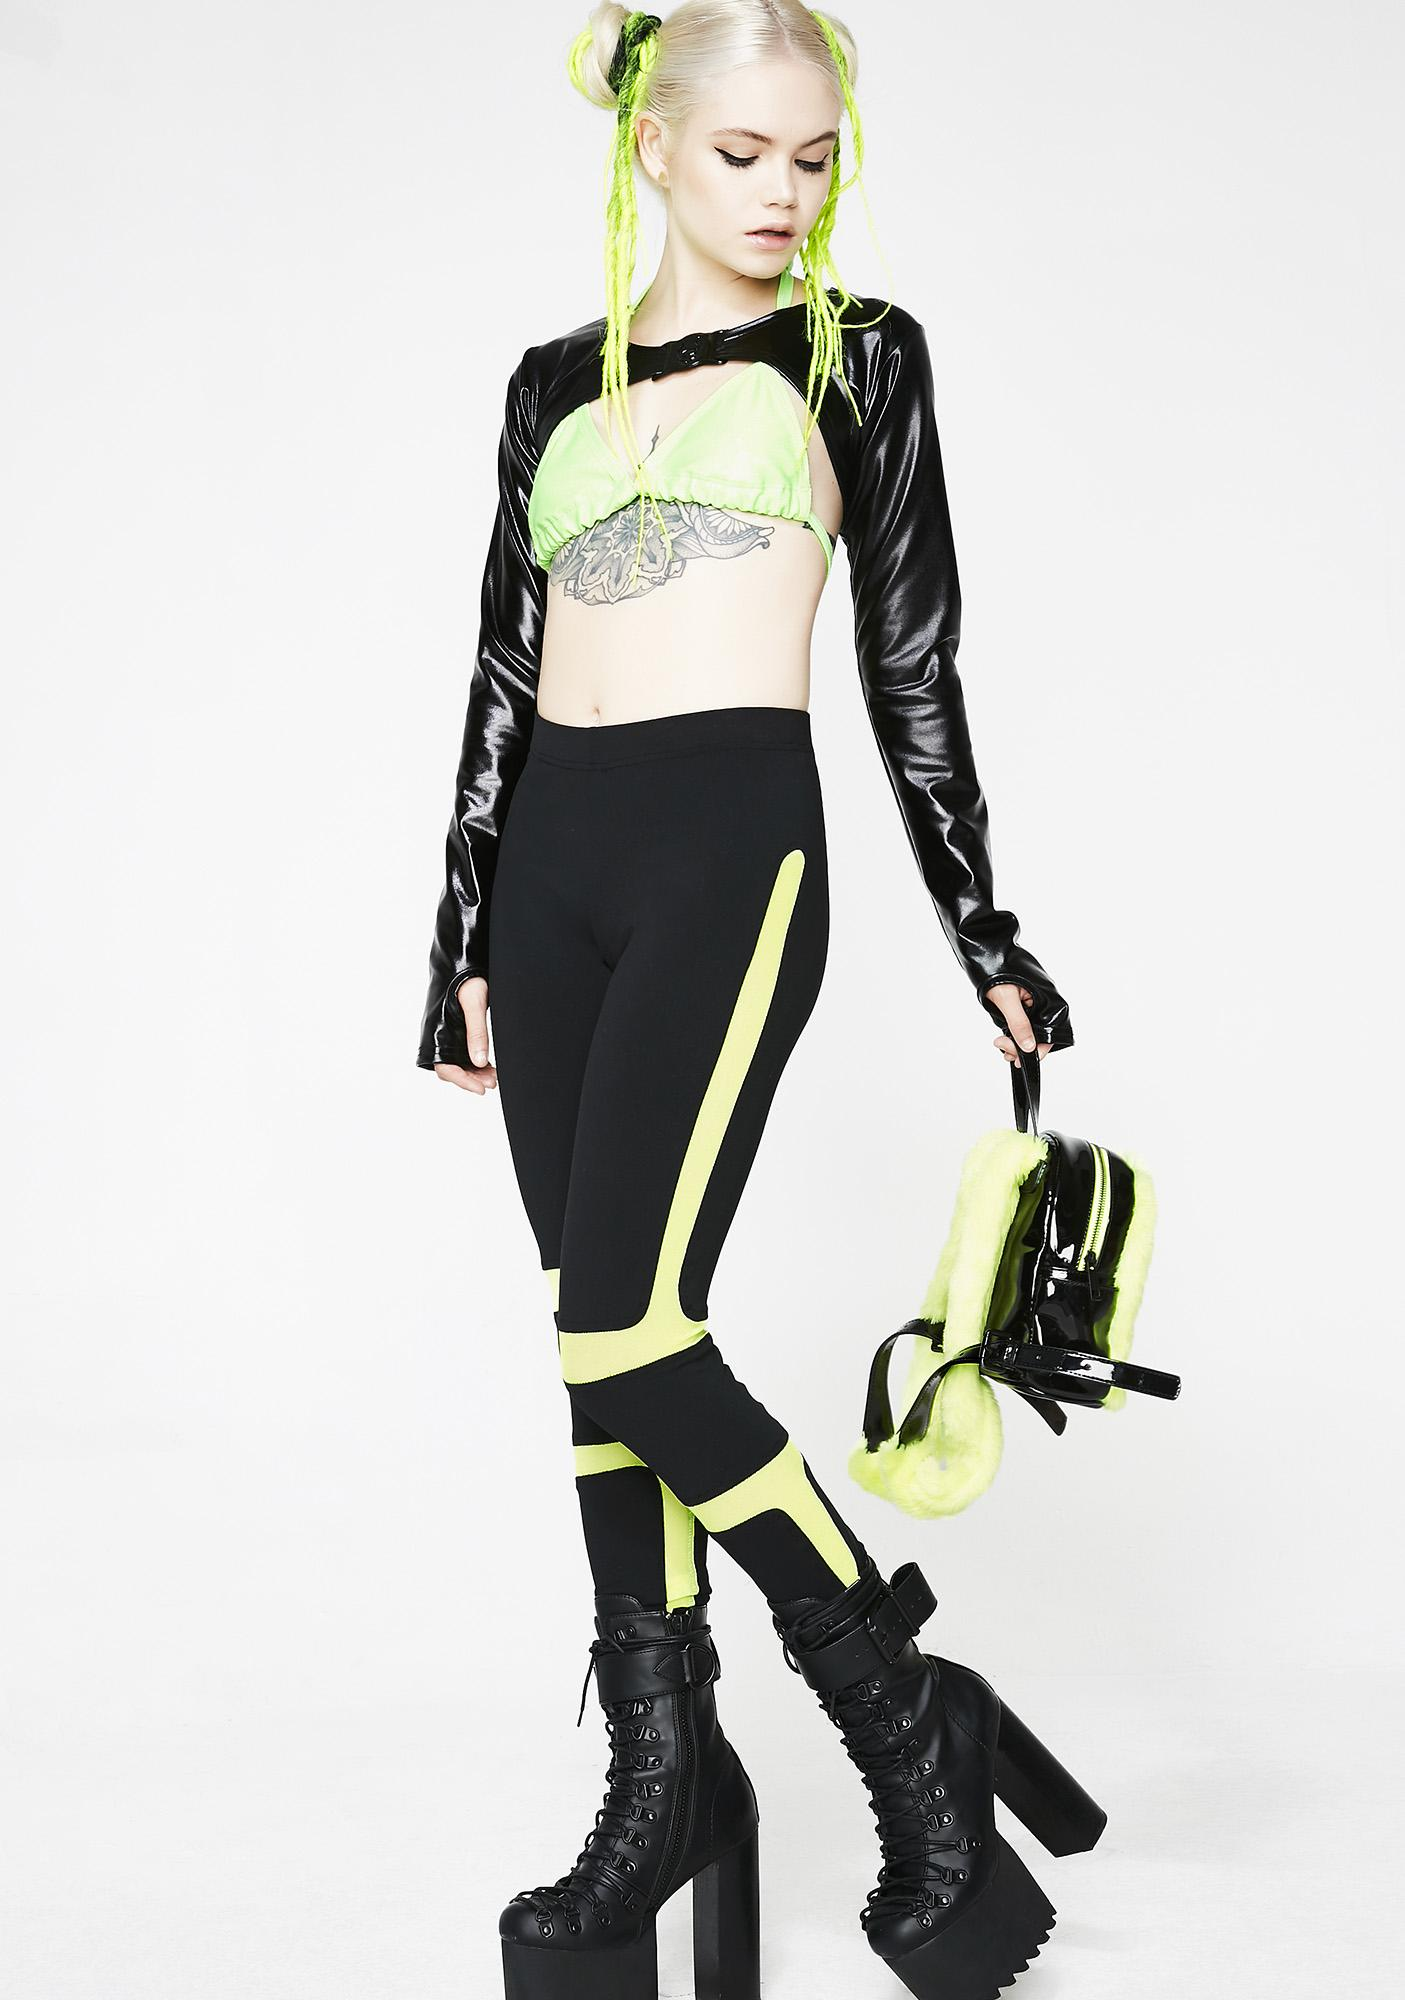 Cyberdog Protection Leggings